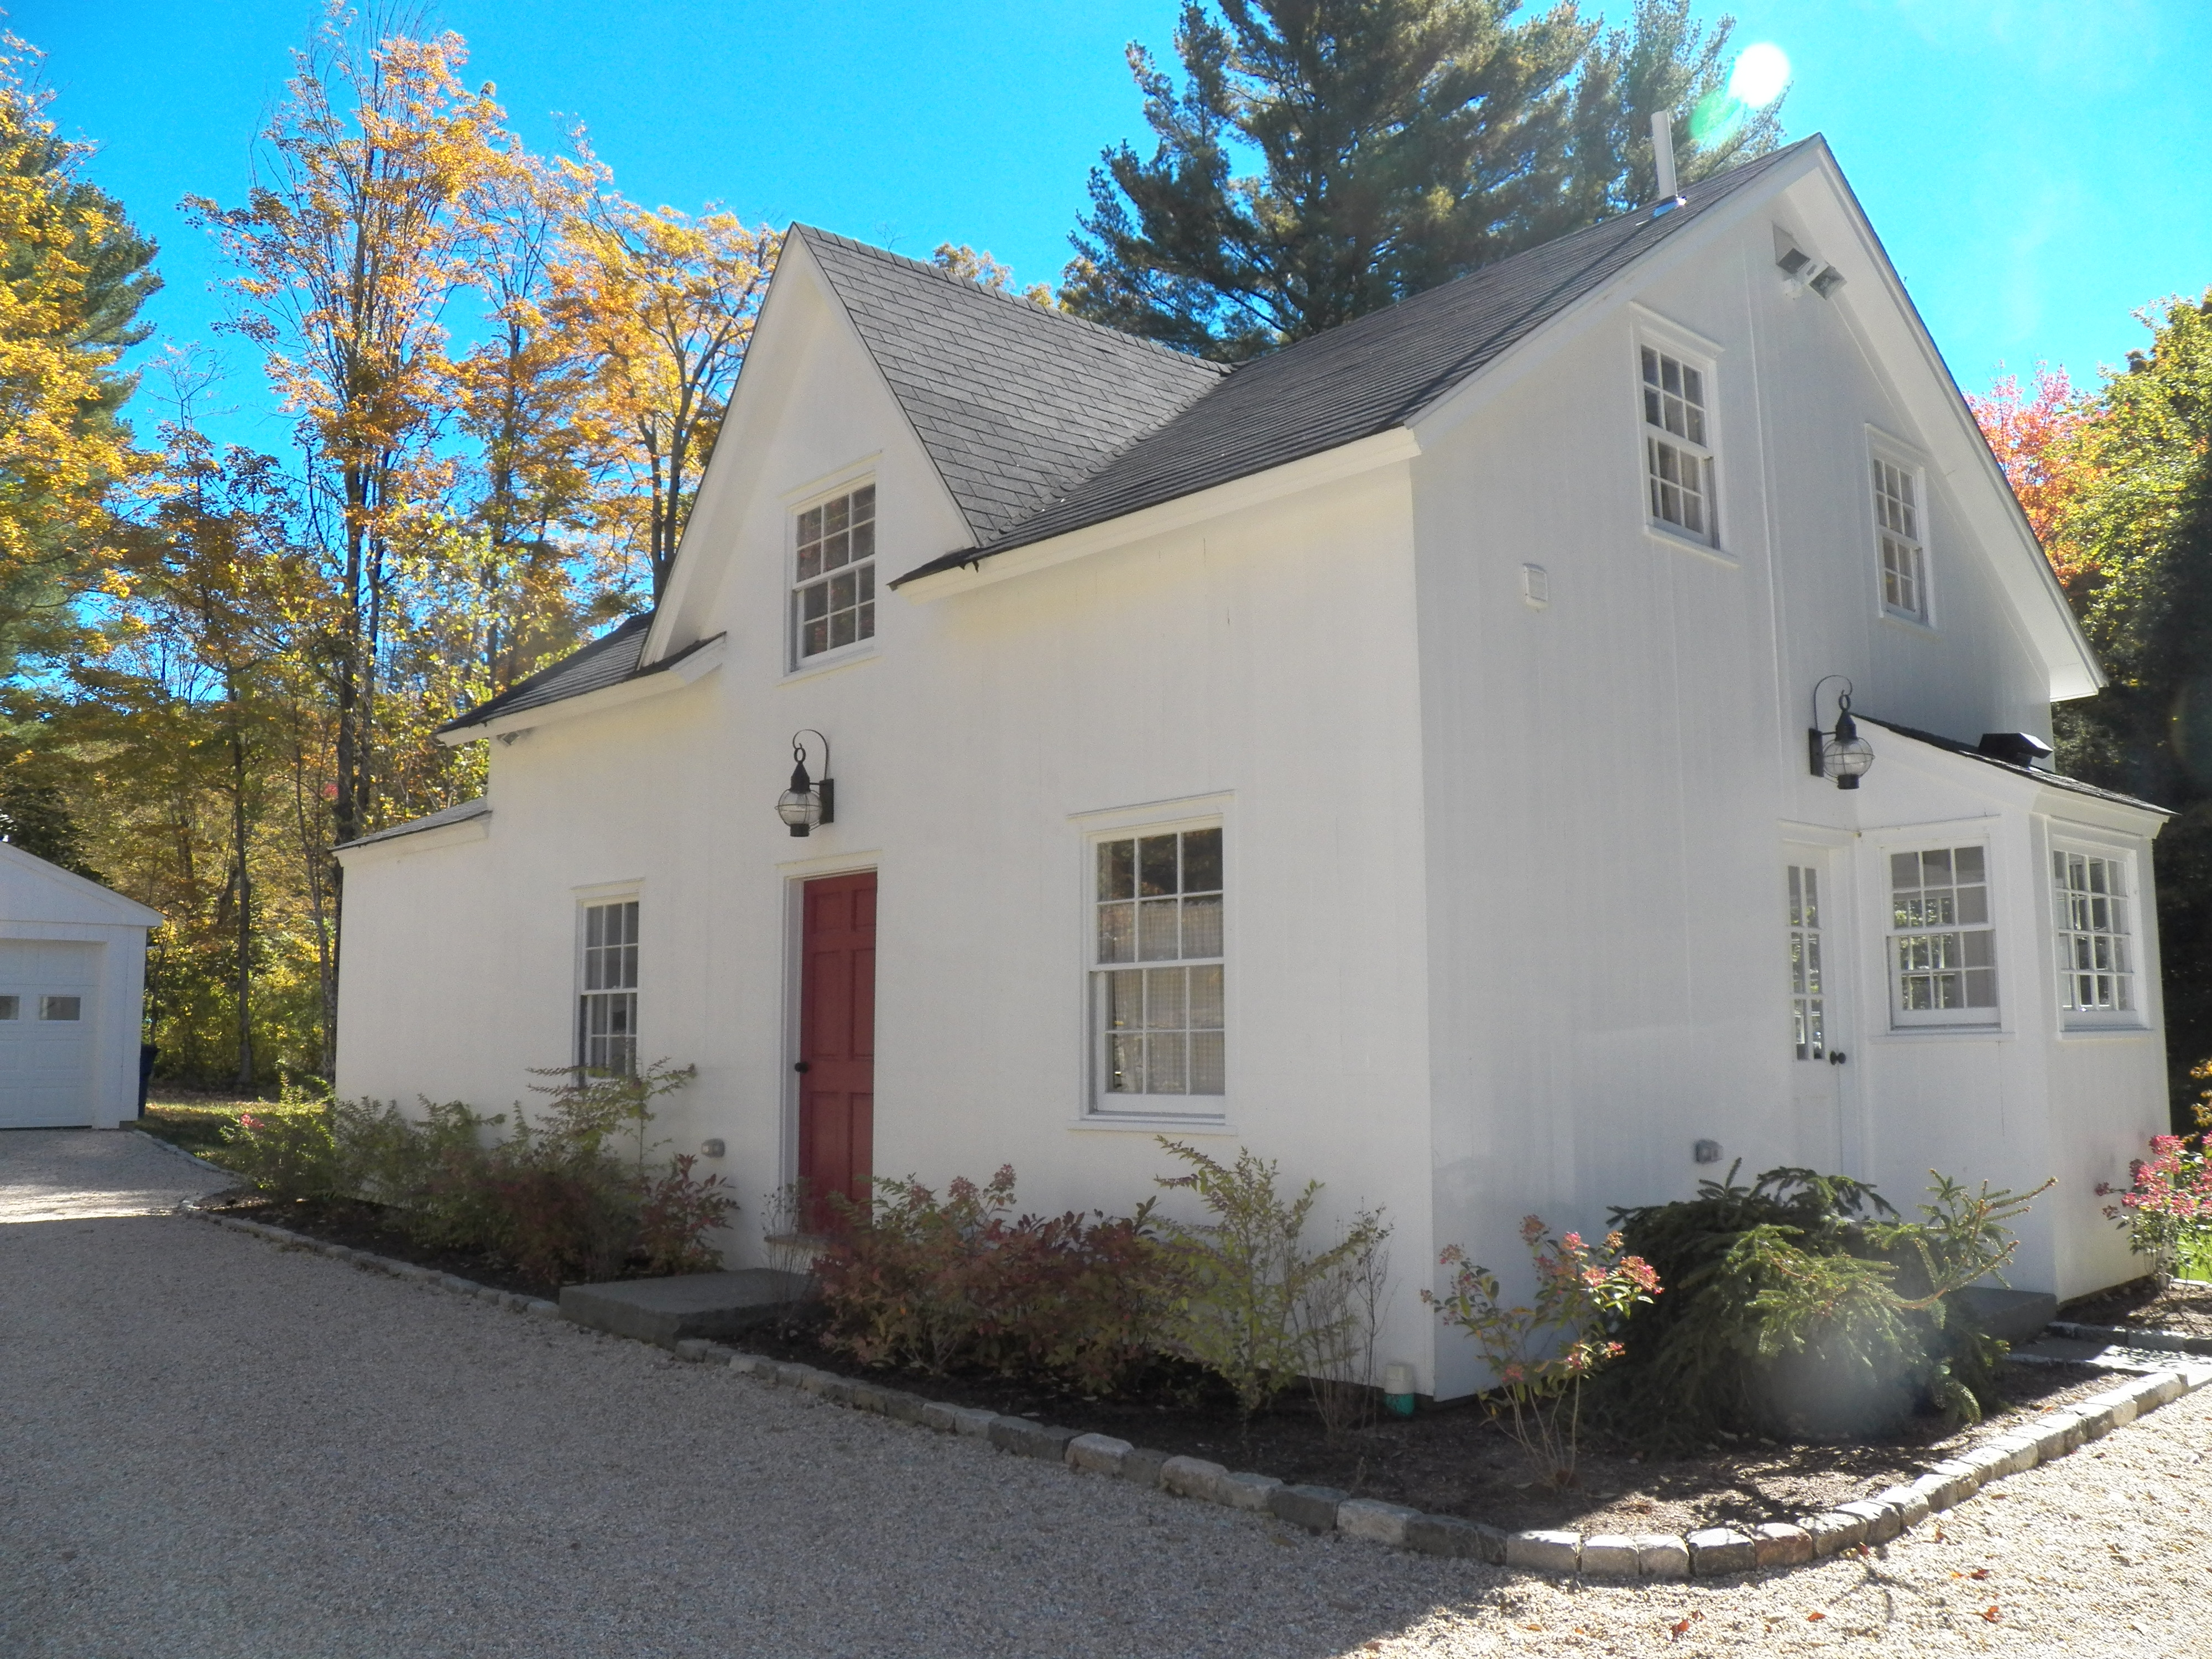 Single Family Home for Sale at Cottage Off The Green 61 Wykeham Rd Washington, Connecticut, 06793 United States